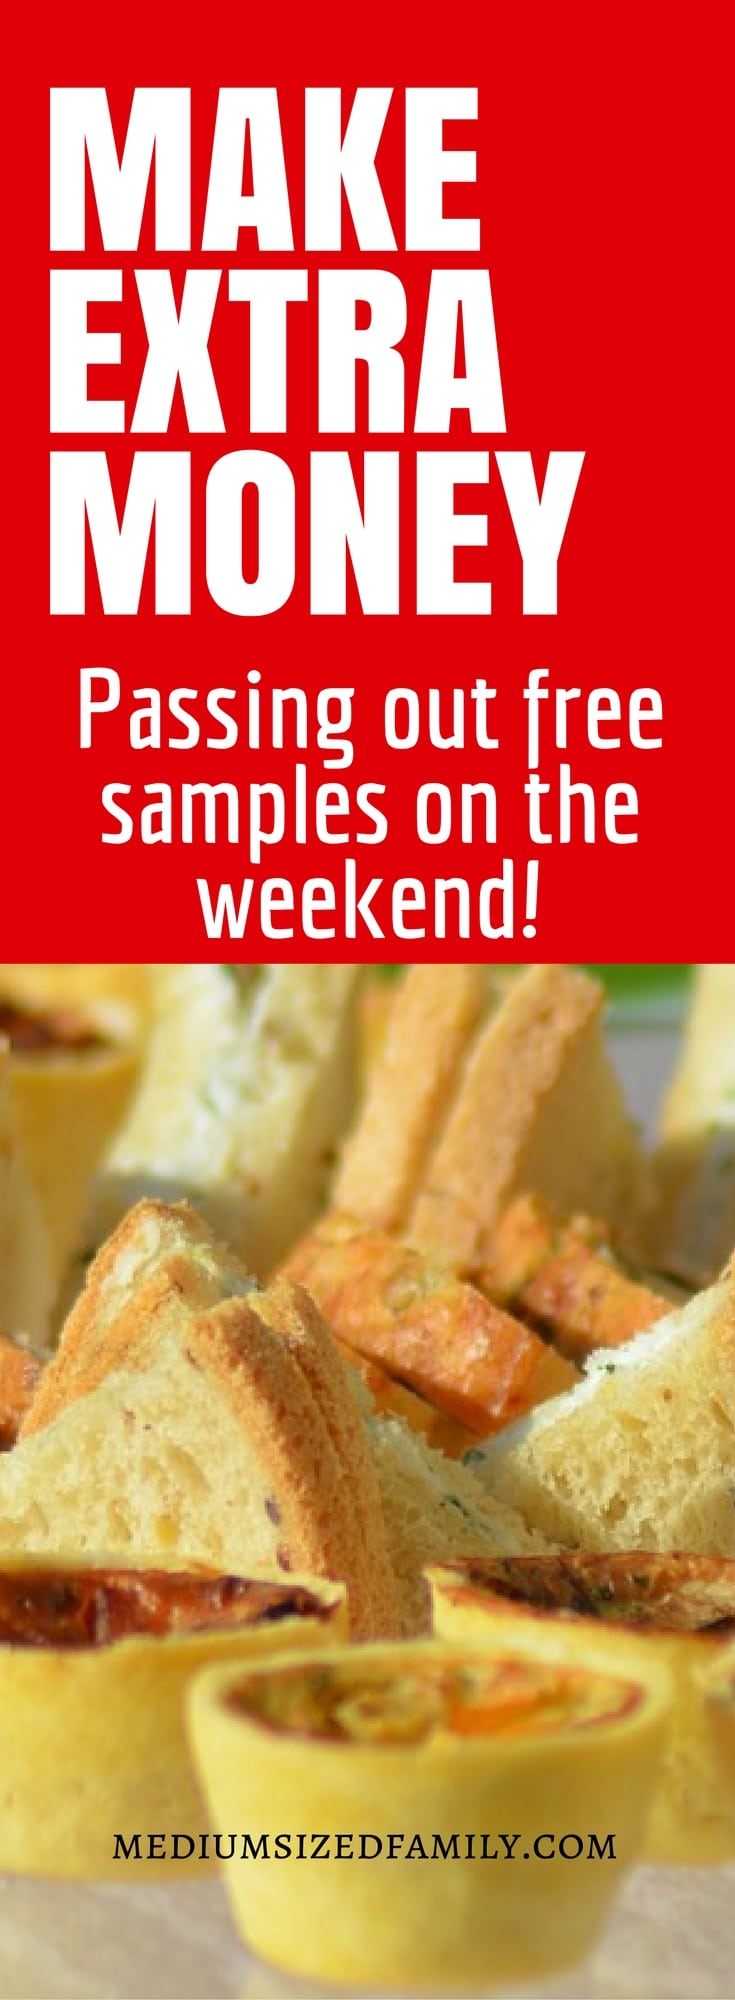 A great way to make extra money by passing out samples in a weekend job.